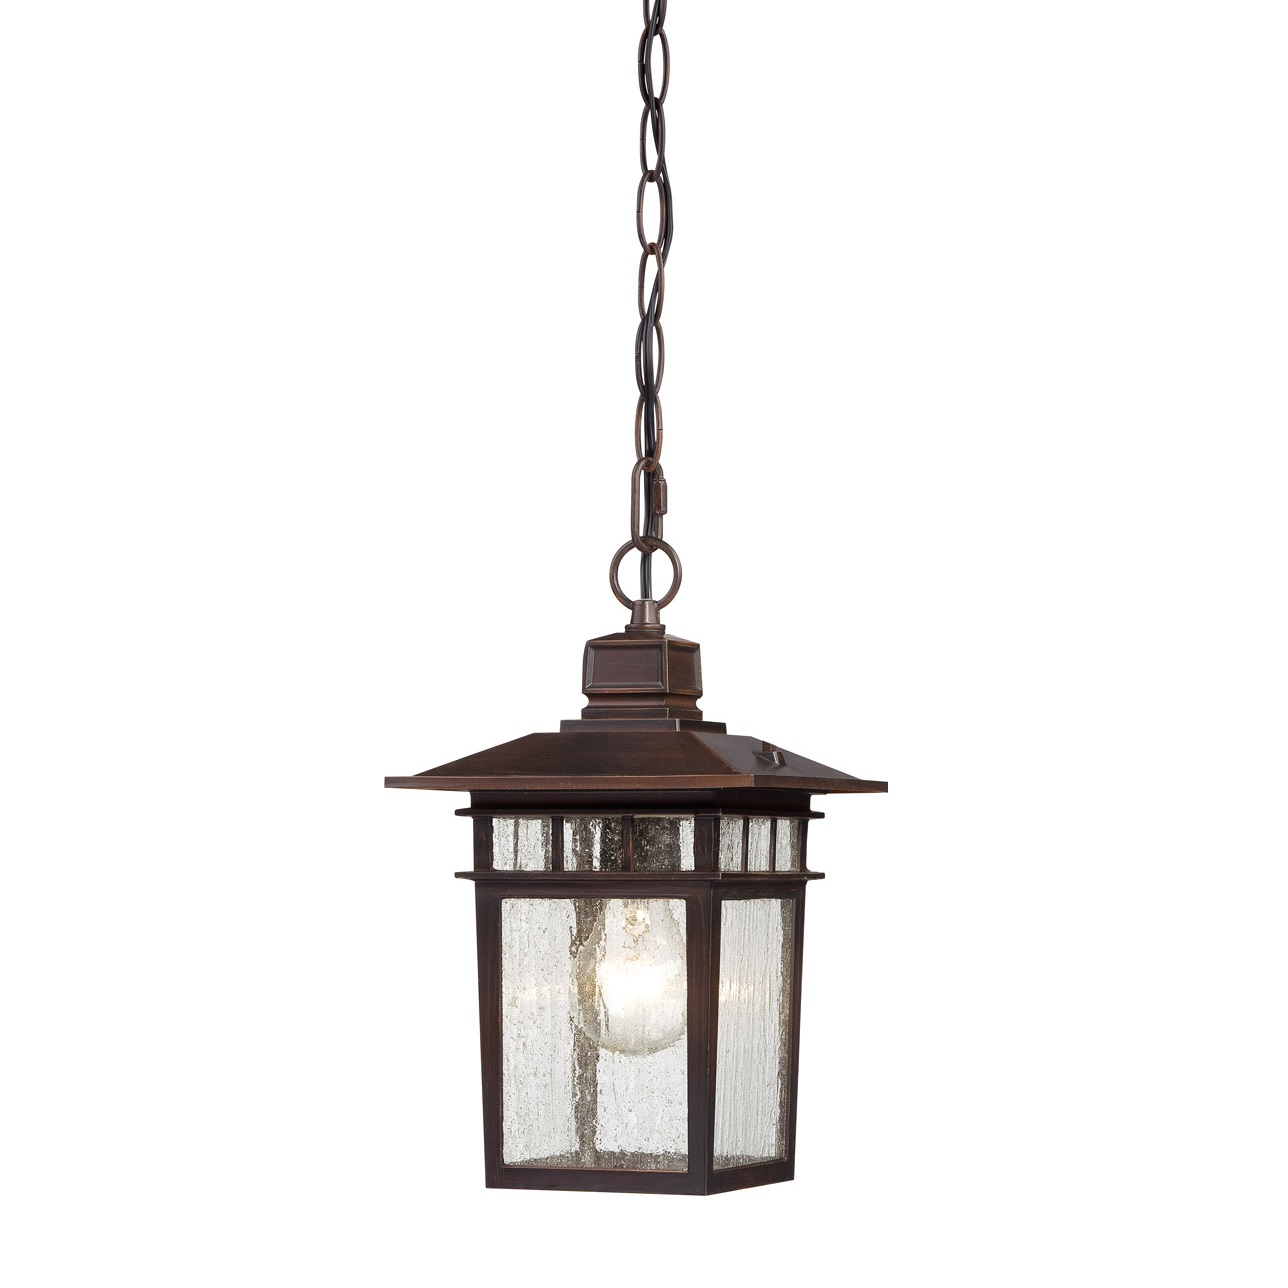 Nuvo lighting cove neck 1 light outdoor hanging lantern in for Hanging outdoor light fixtures